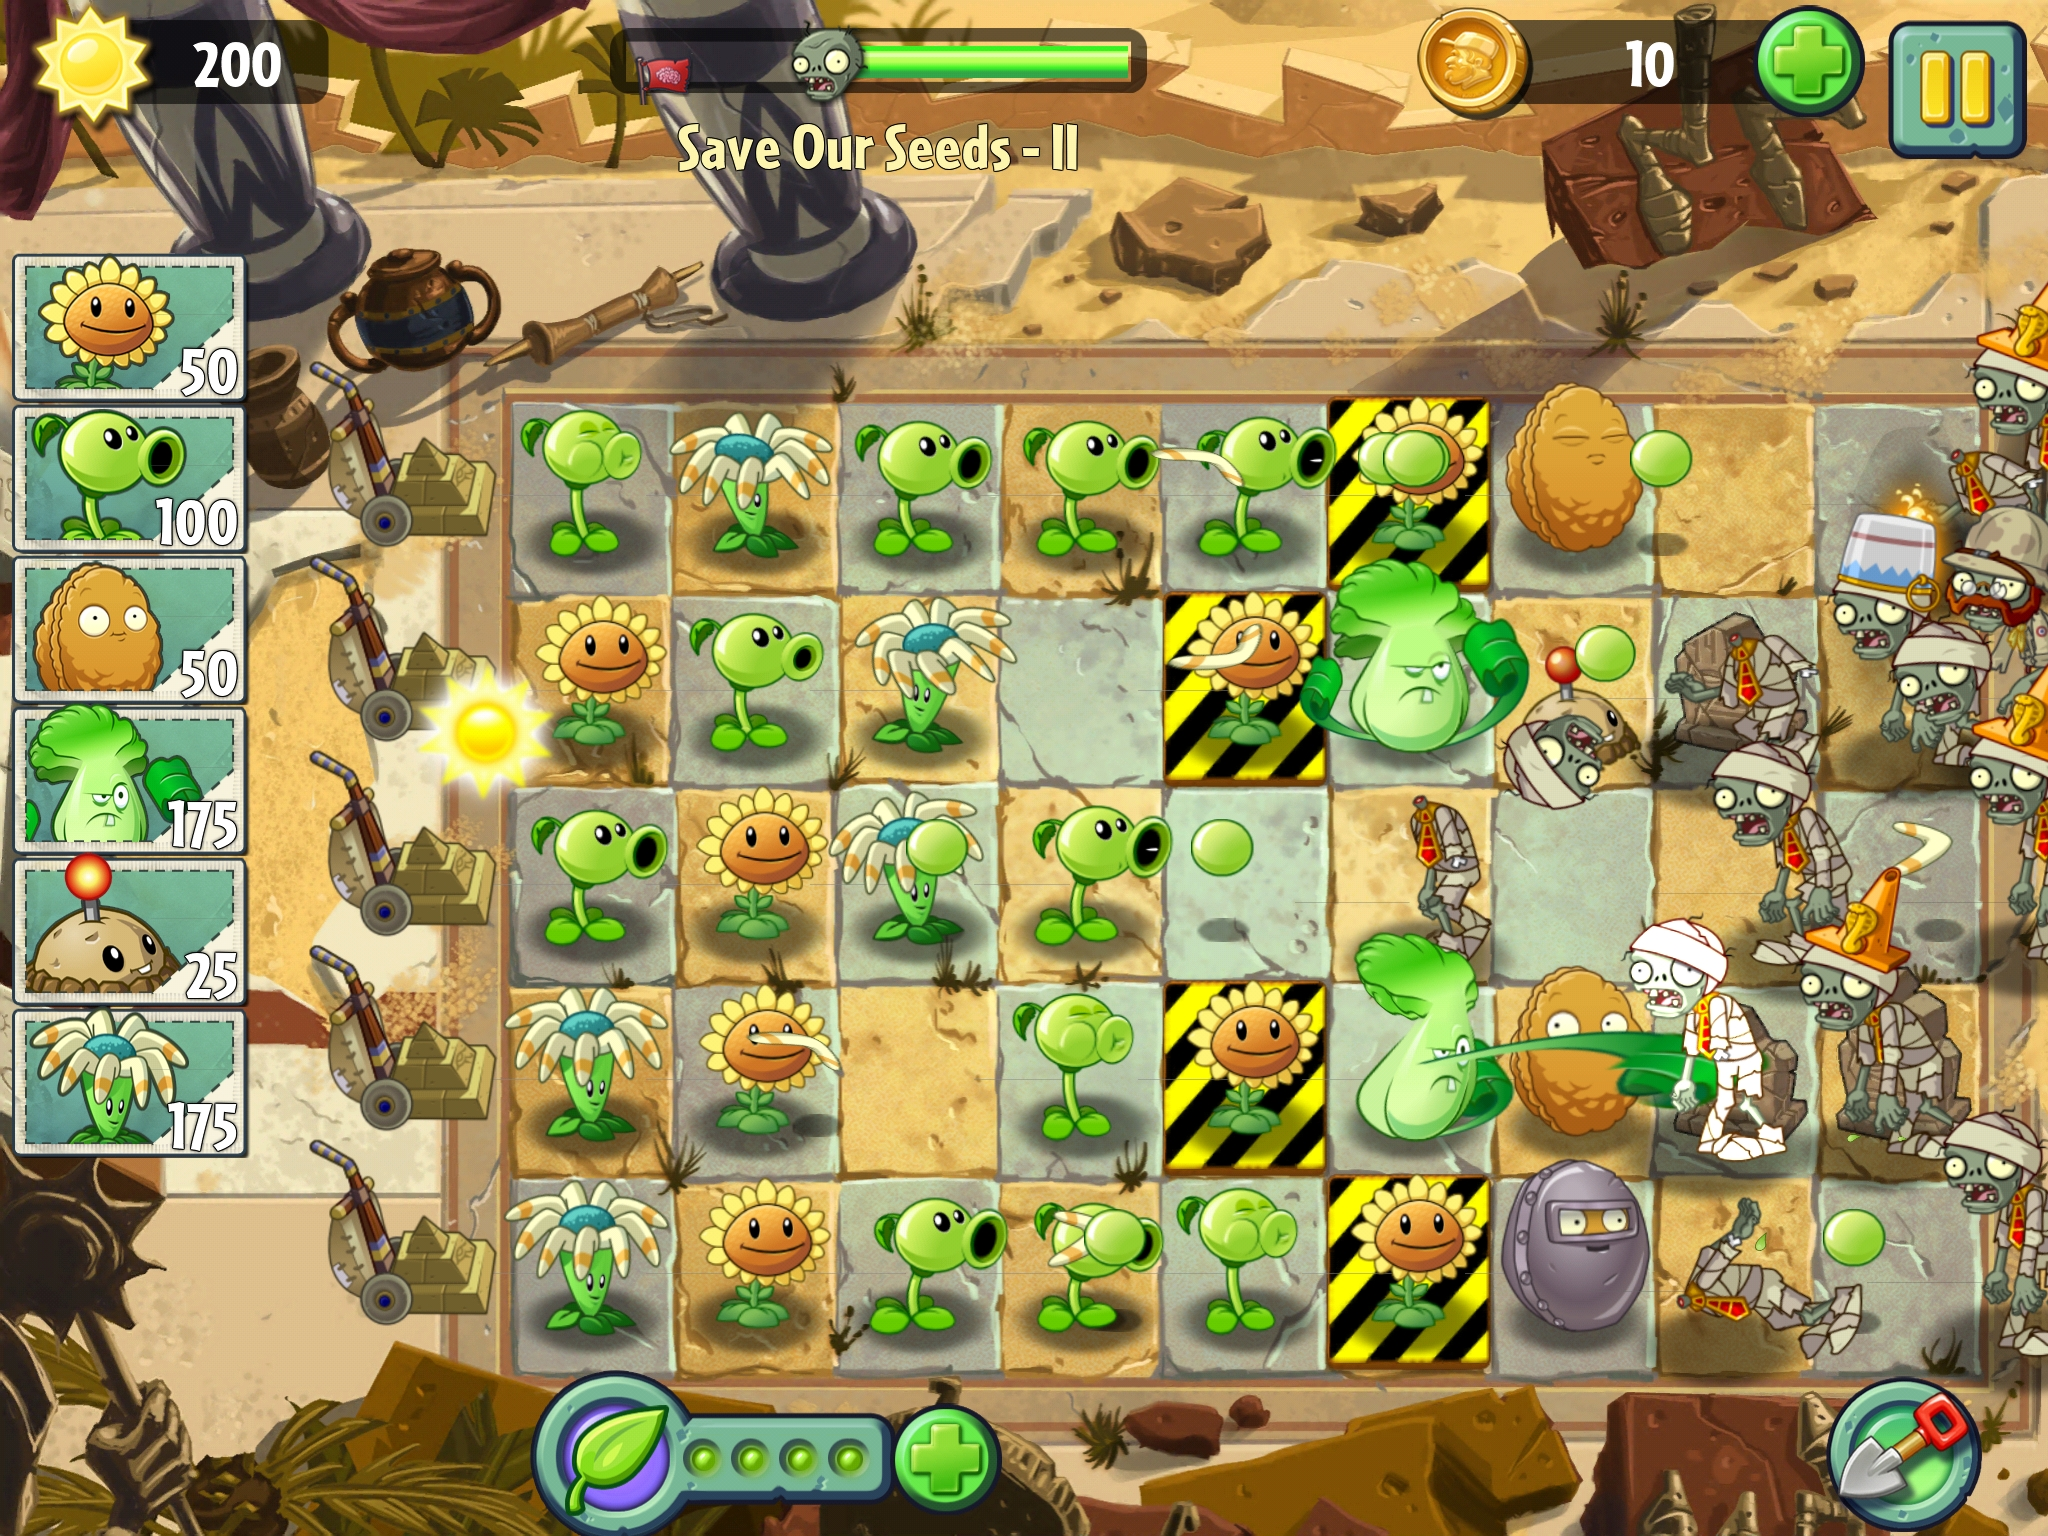 Popcap Launches Plants Vs Zombies 2 Worldwide Business Wire